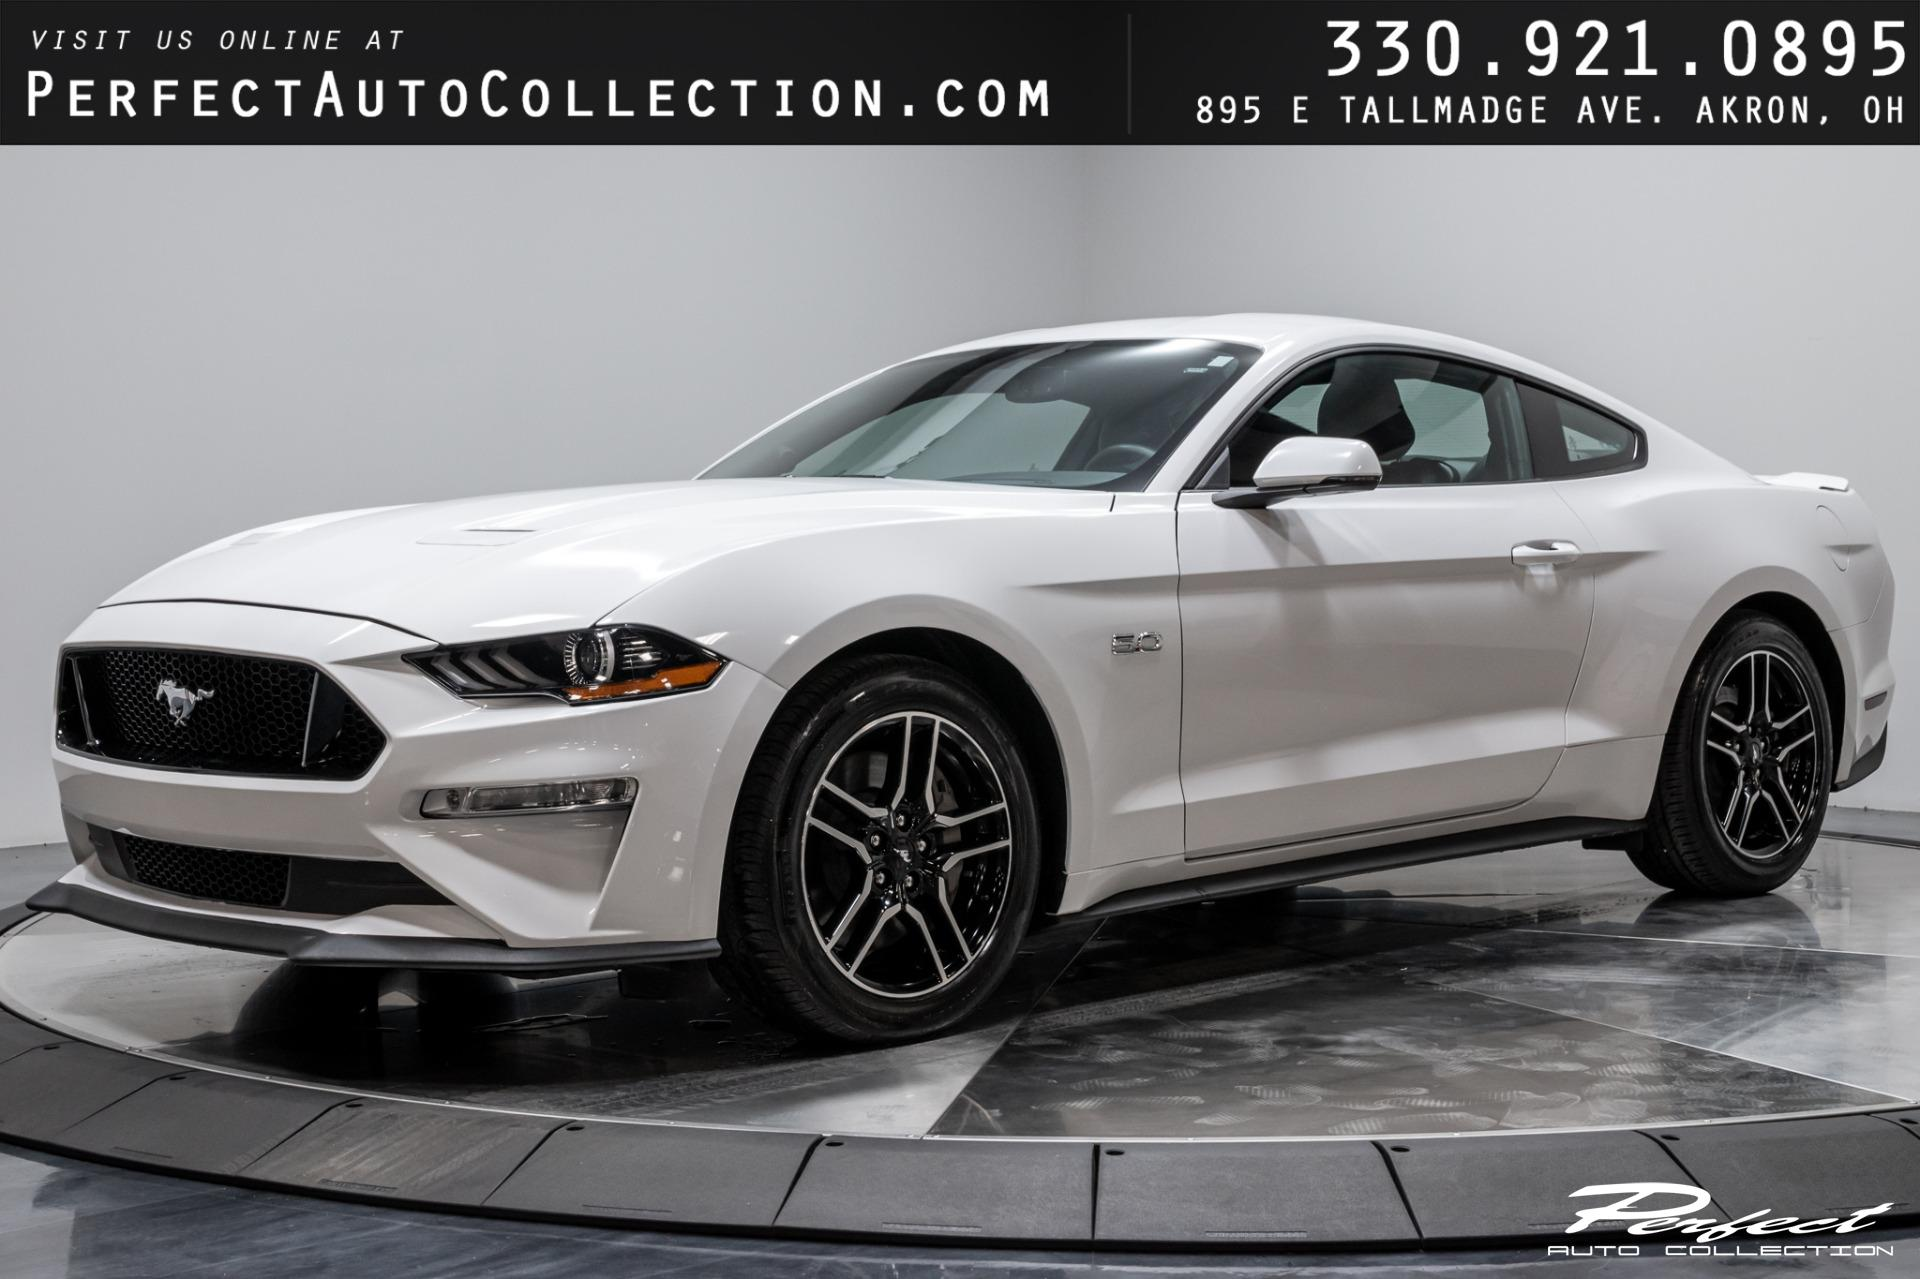 Used 2020 Ford Mustang GT for sale Sold at Perfect Auto Collection in Akron OH 44310 1